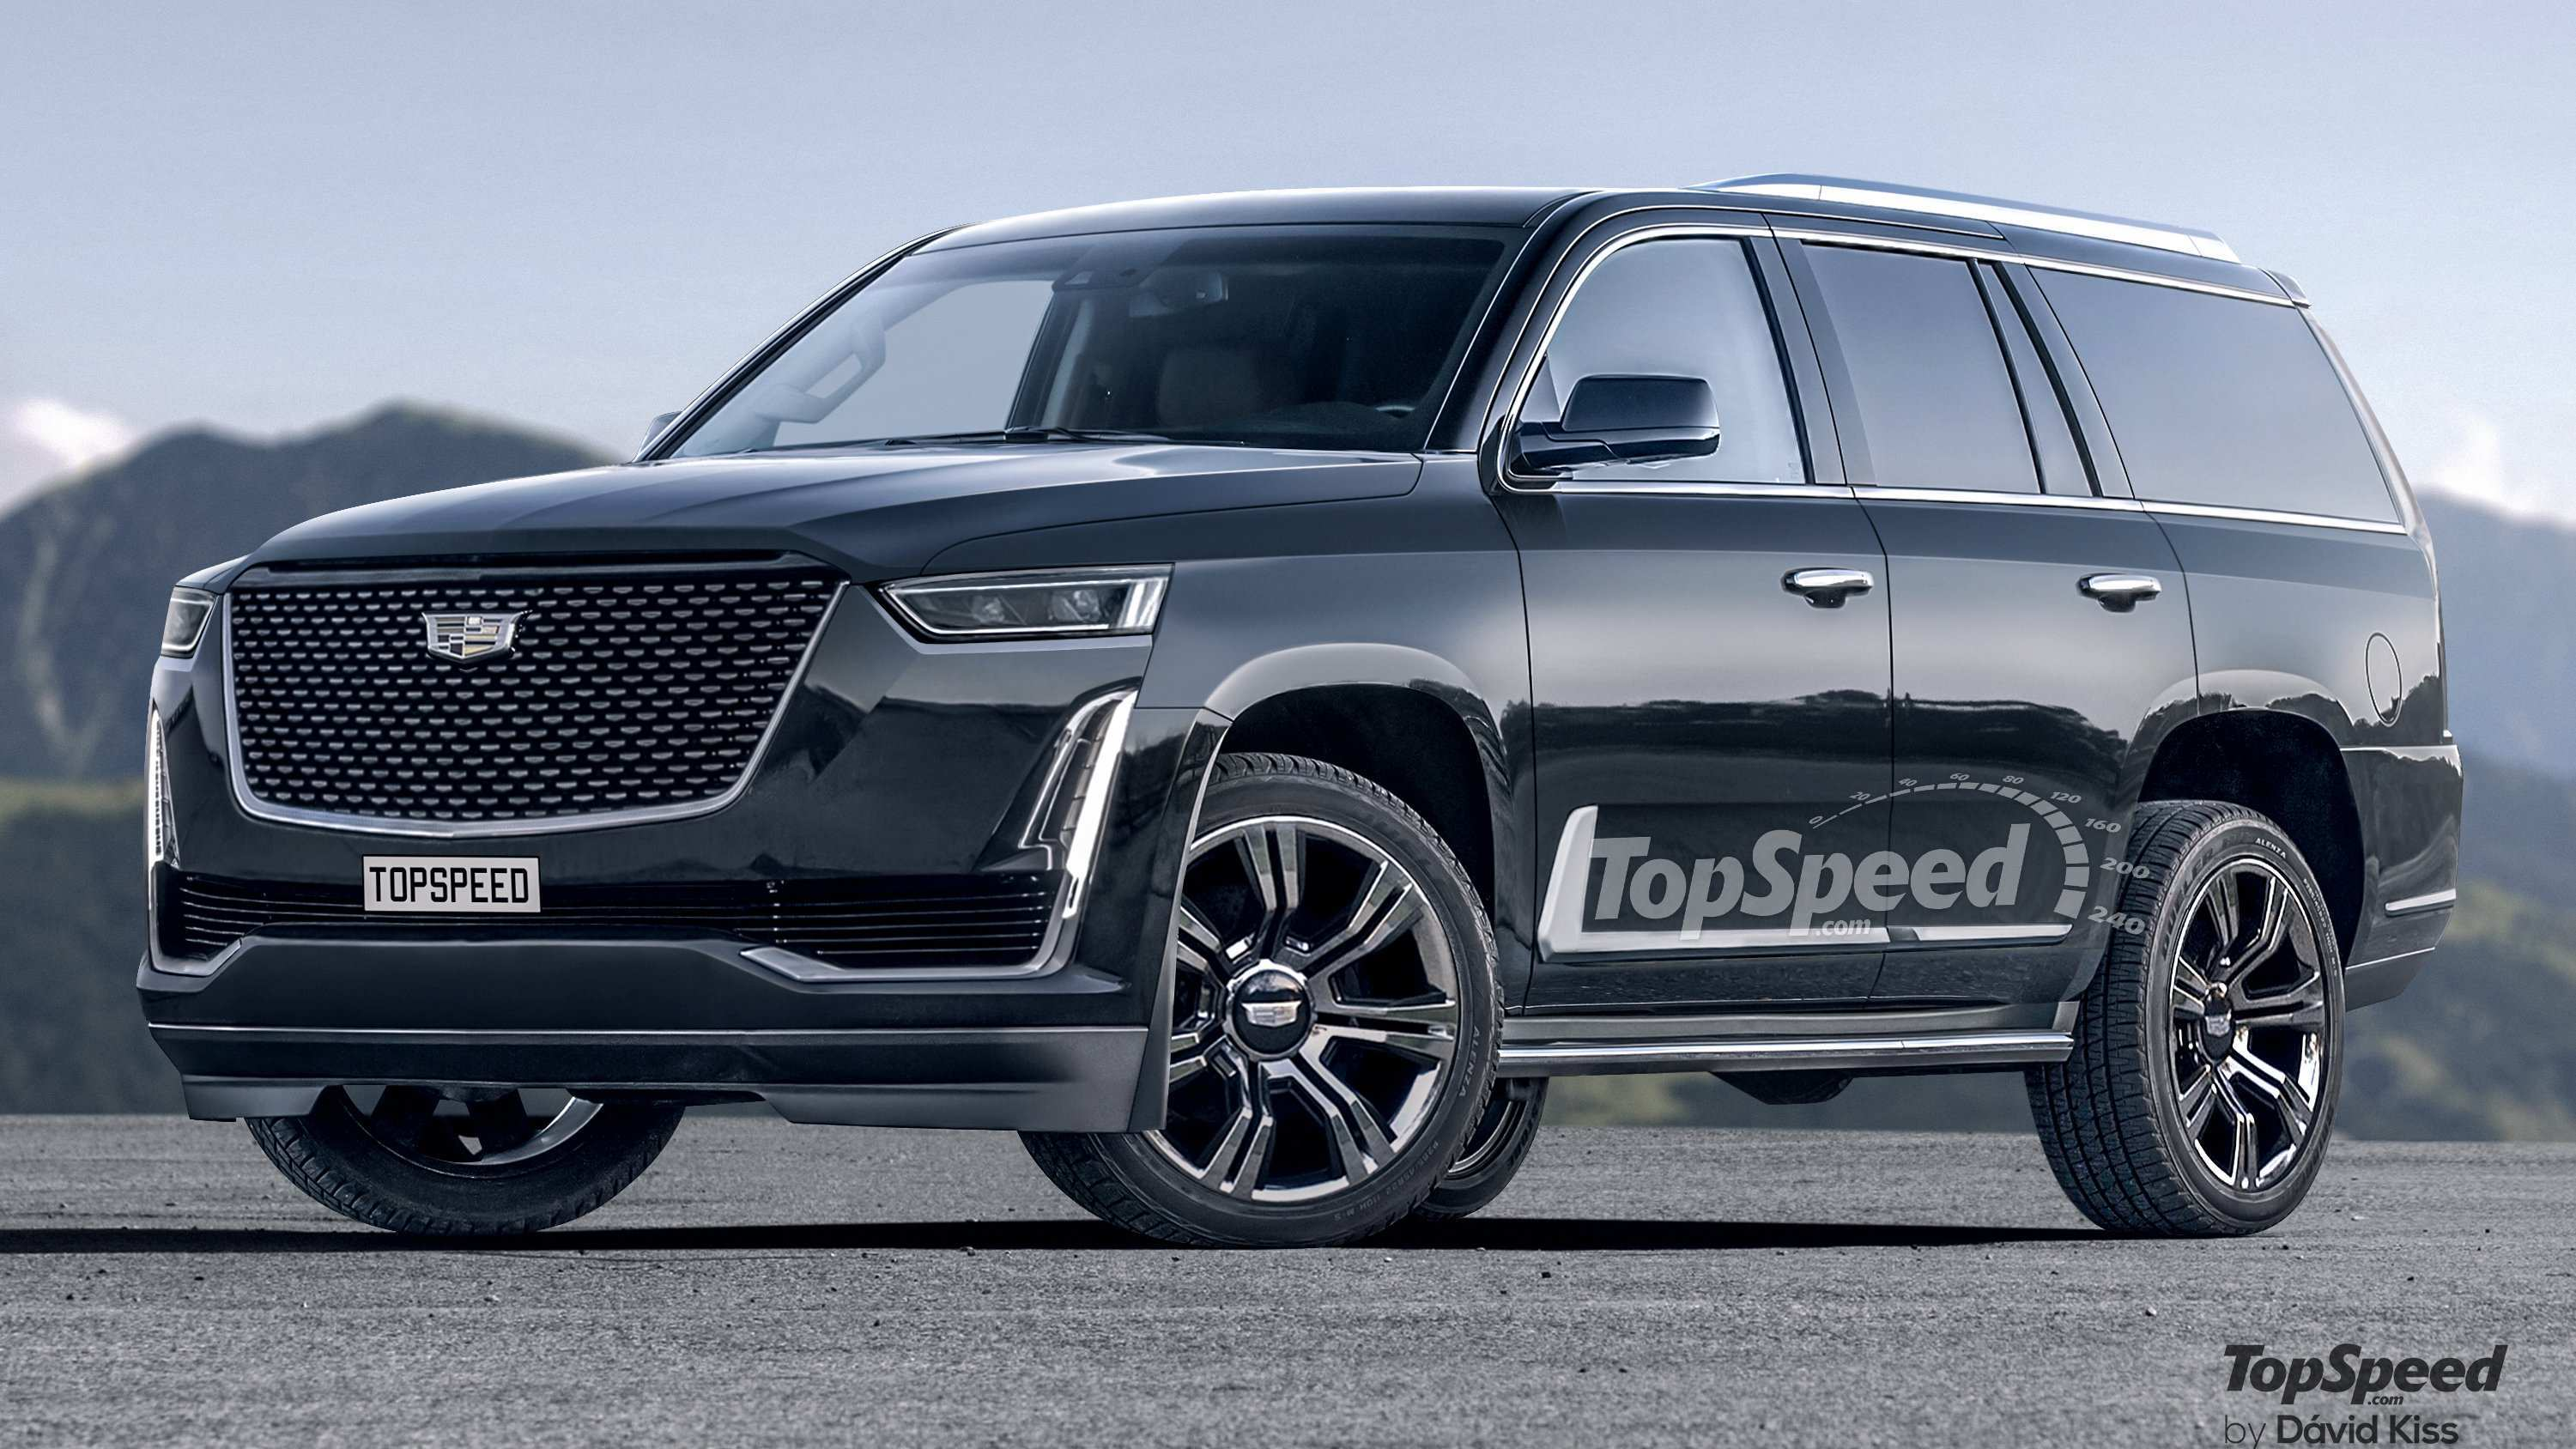 32 Best Review When Can I Order A 2020 Cadillac Escalade Ratings for When Can I Order A 2020 Cadillac Escalade